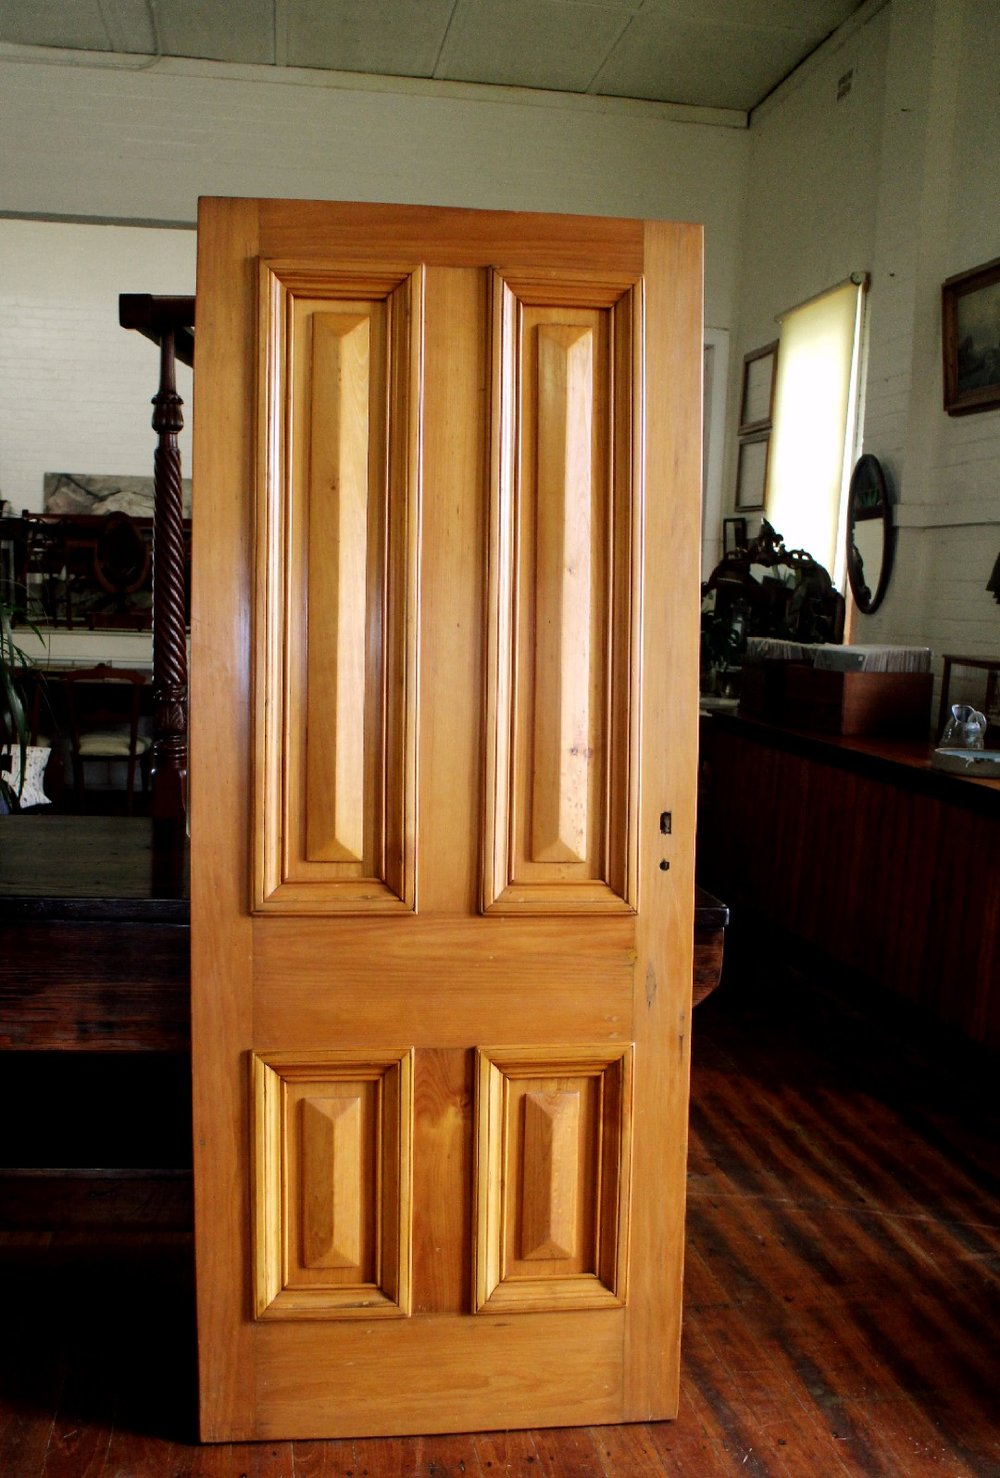 A beautiful Hoop Pine Front Door , ex the Station Master's Residence Murwillumbah ,northern NSW , built in 1894 .  This door is in great condition having had a detailed restoration . 2080mm x 840mm x 40mm thick  $2850